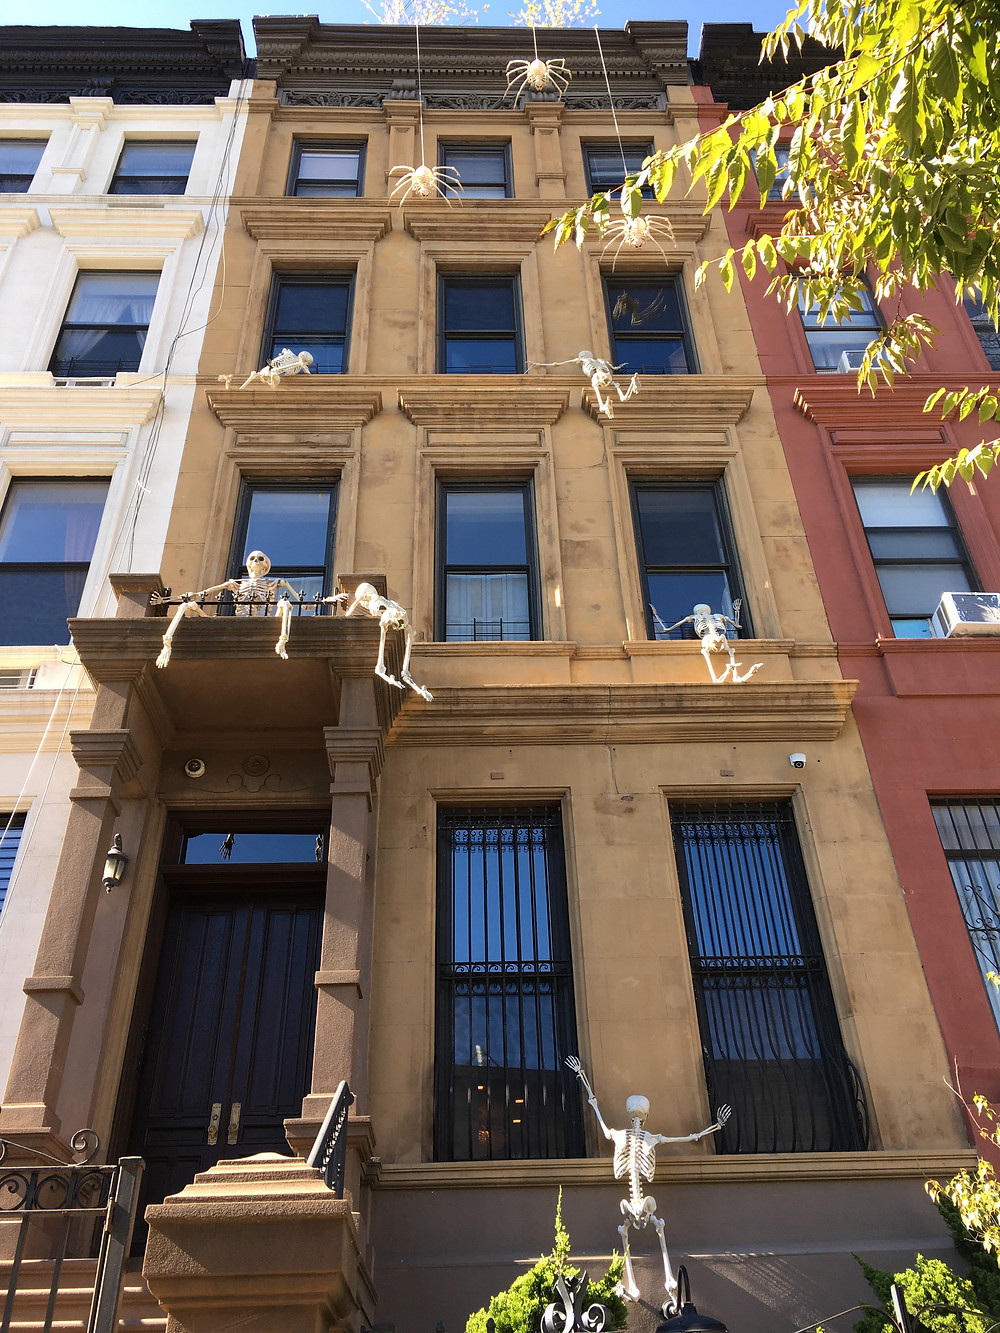 Skeletons climb up this brownstone on Fifth Avenue in Harlem